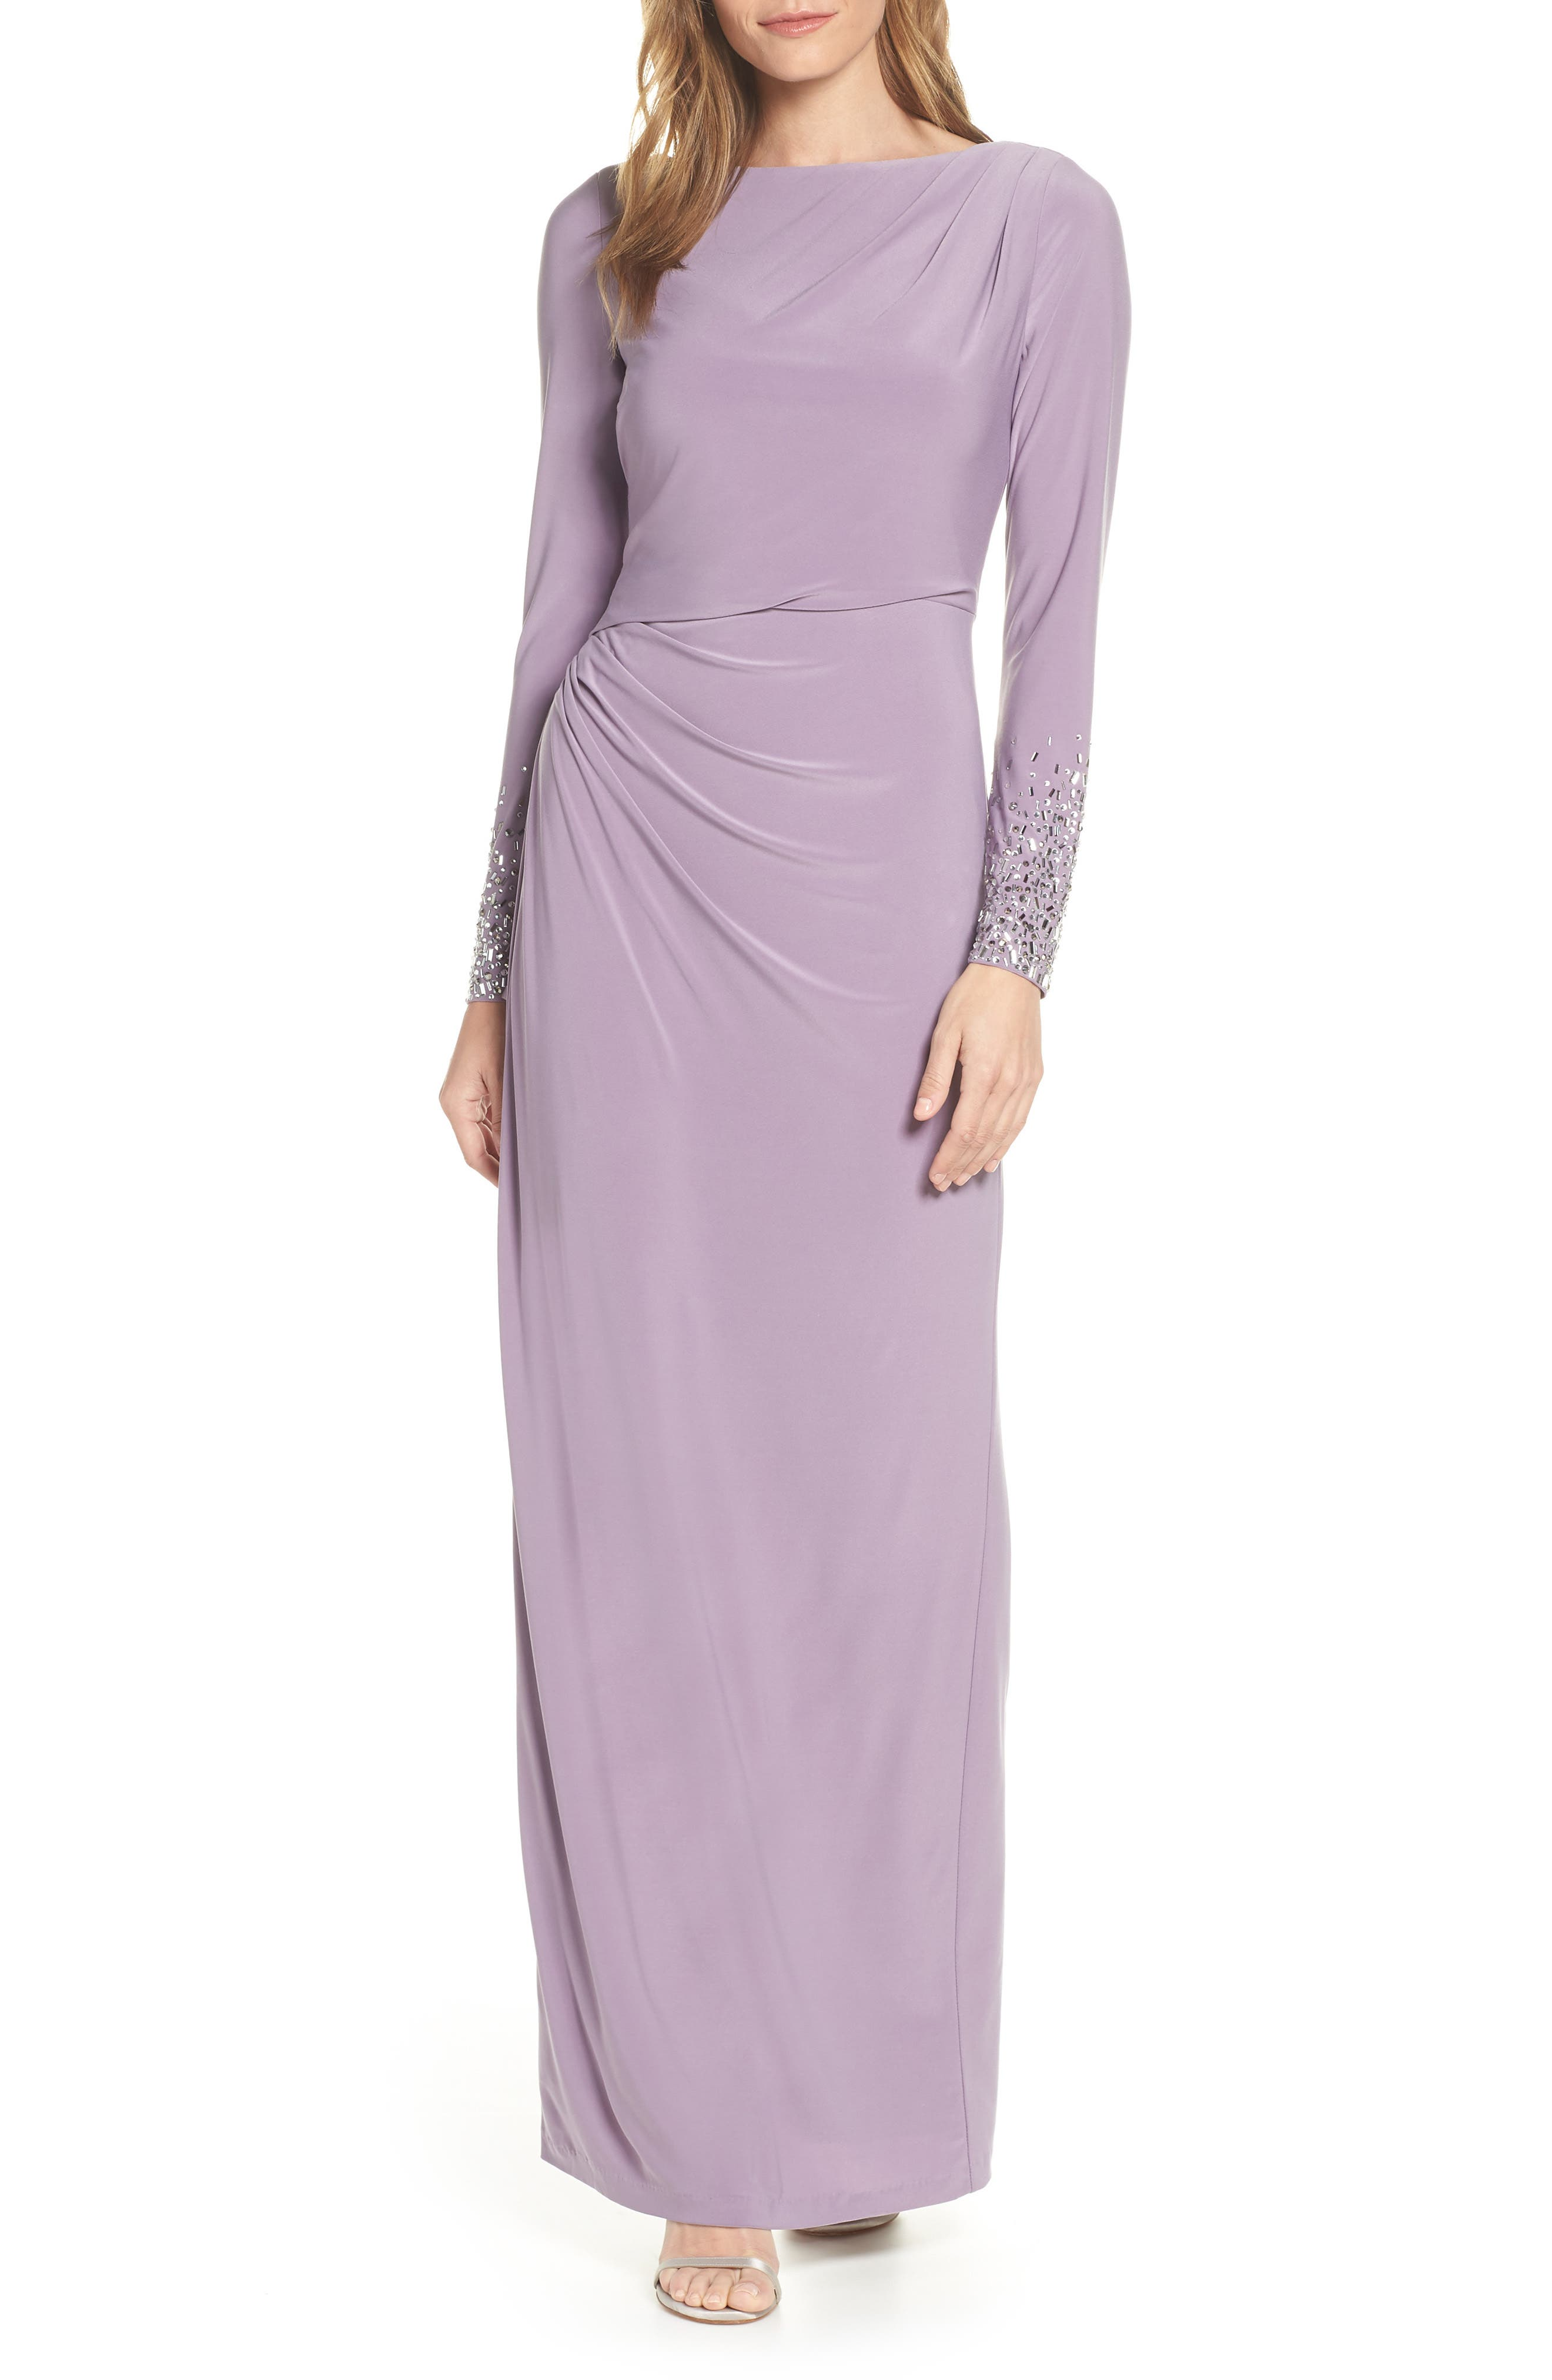 Petite Vince Camuto Embellished Sleeve Ruched Evening Dress, Purple